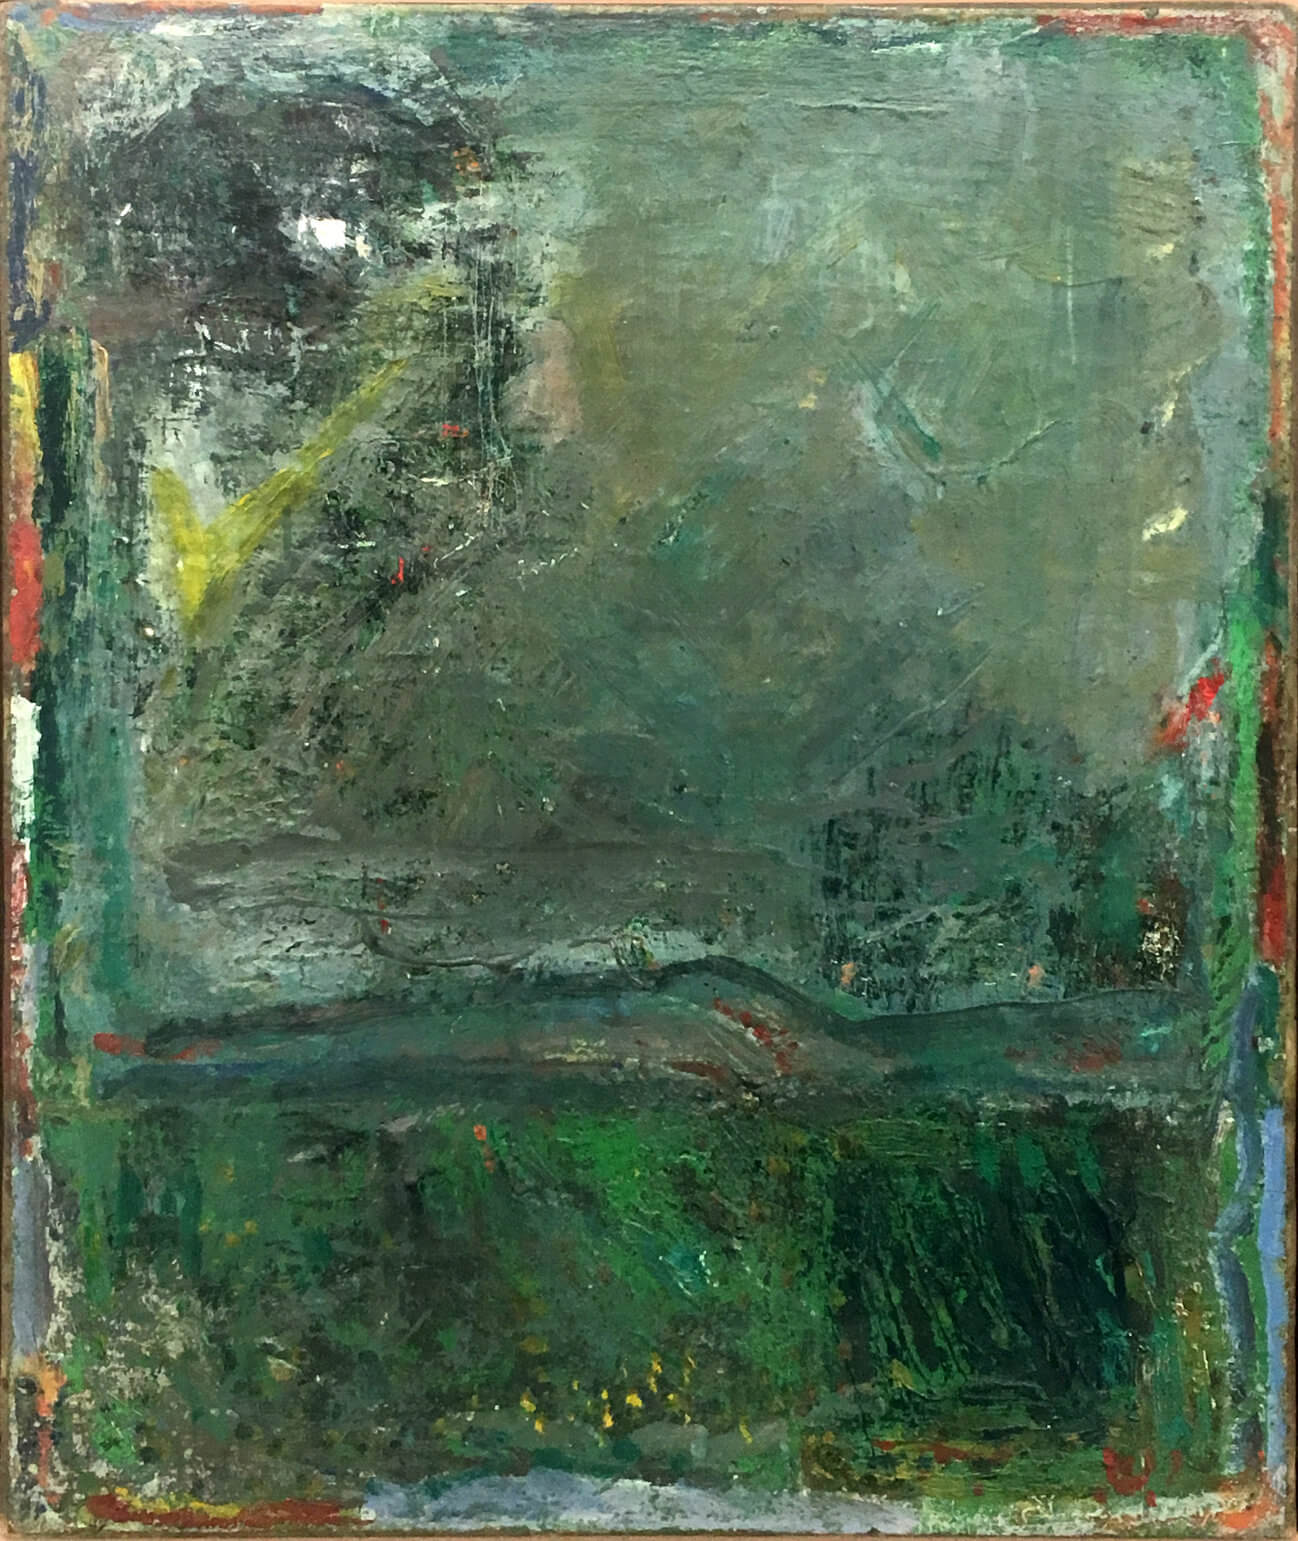 1463_Yehezkel Streichman, 1958, Oil on canvas, 61x50 cm-1298x1541